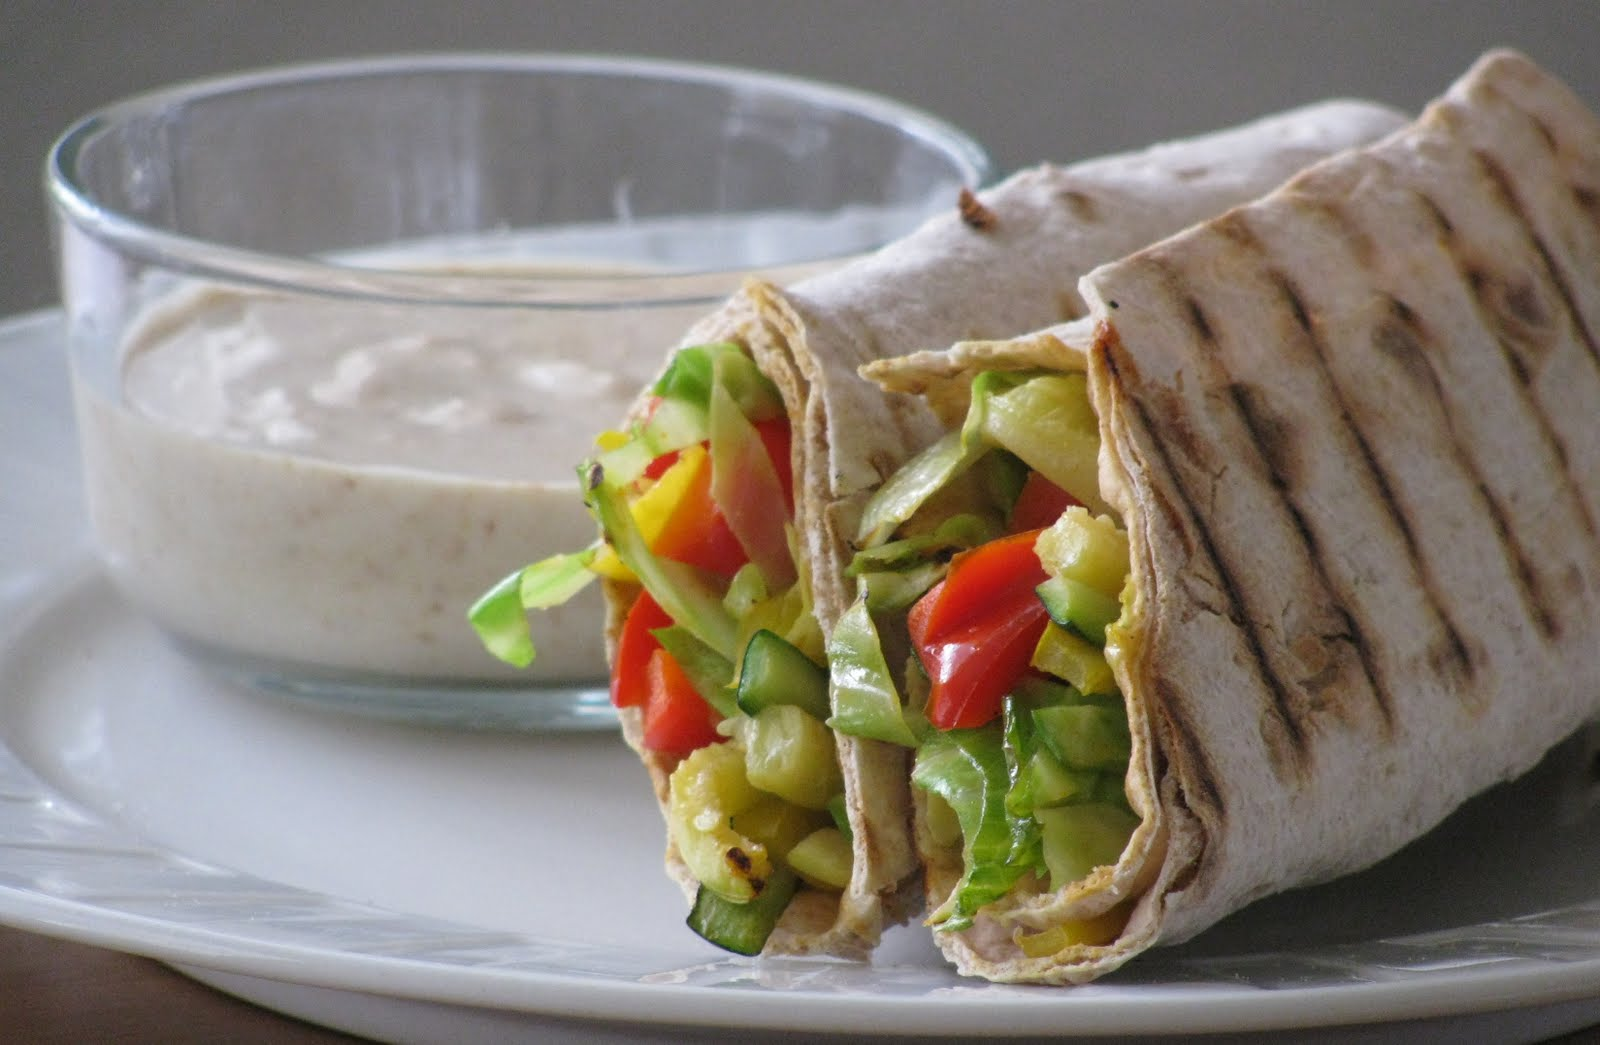 ... House of Veggies: Crispy Vegetable Lavash Wraps with Spicy Hummus dip